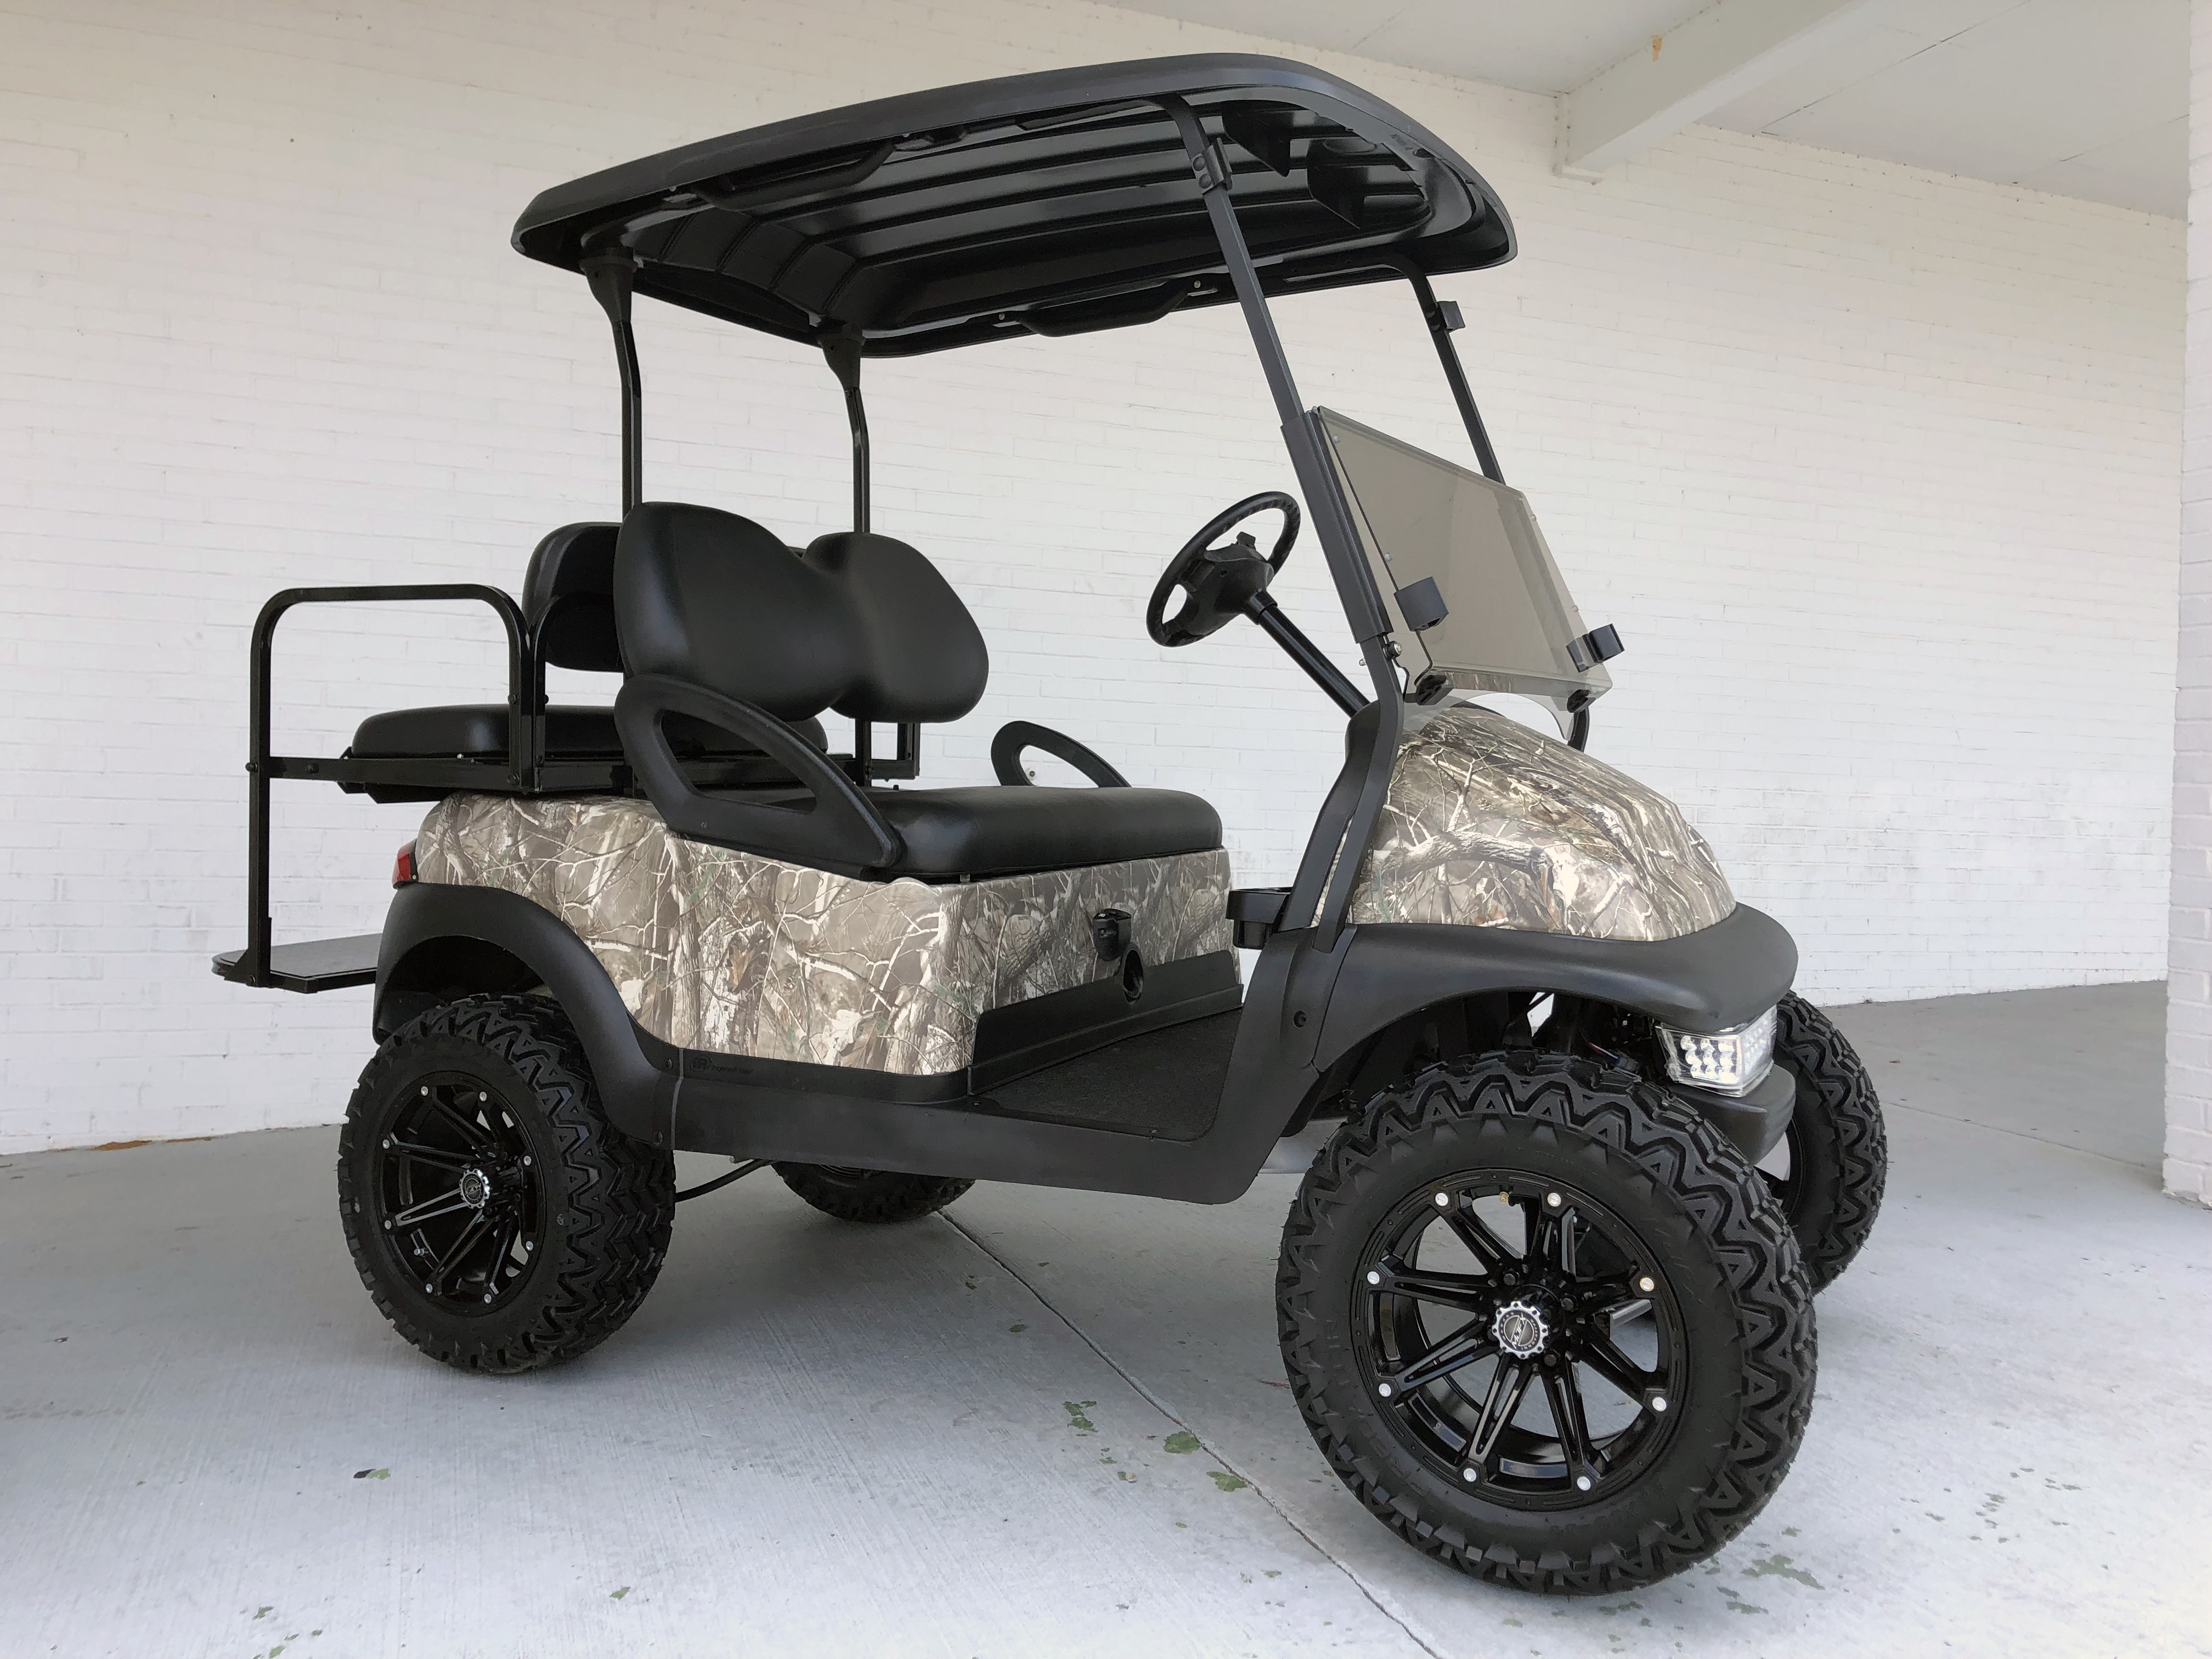 HUNTING OFFROAD GOLF CART CAMO BODY LIFTED CLUB CAR PRECEDENT